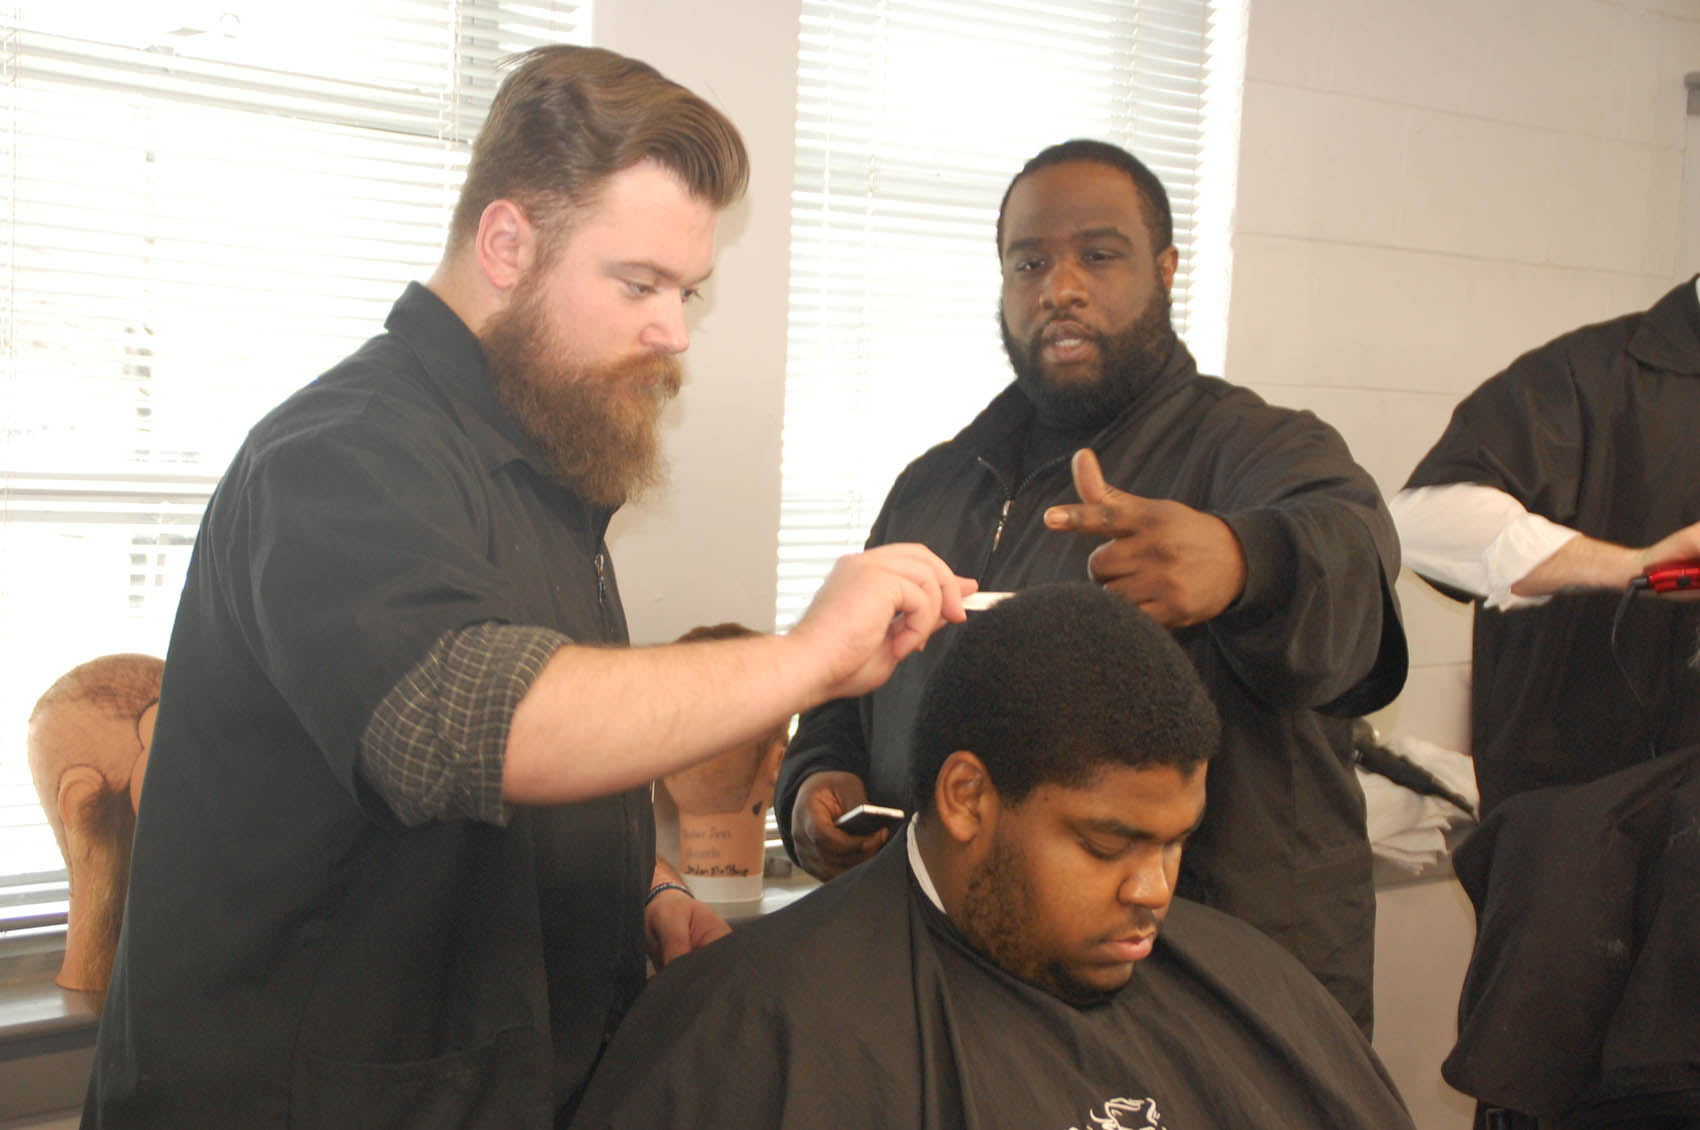 Click to enlarge,  Tom Woerner, The Daily Record of Dunn. Central Carolina Community College barbering student Austin Beck (left) cuts Shawn Chance's hair at the school's Dunn Center. Instructor Arthur McCullers is shown overseeing the work.